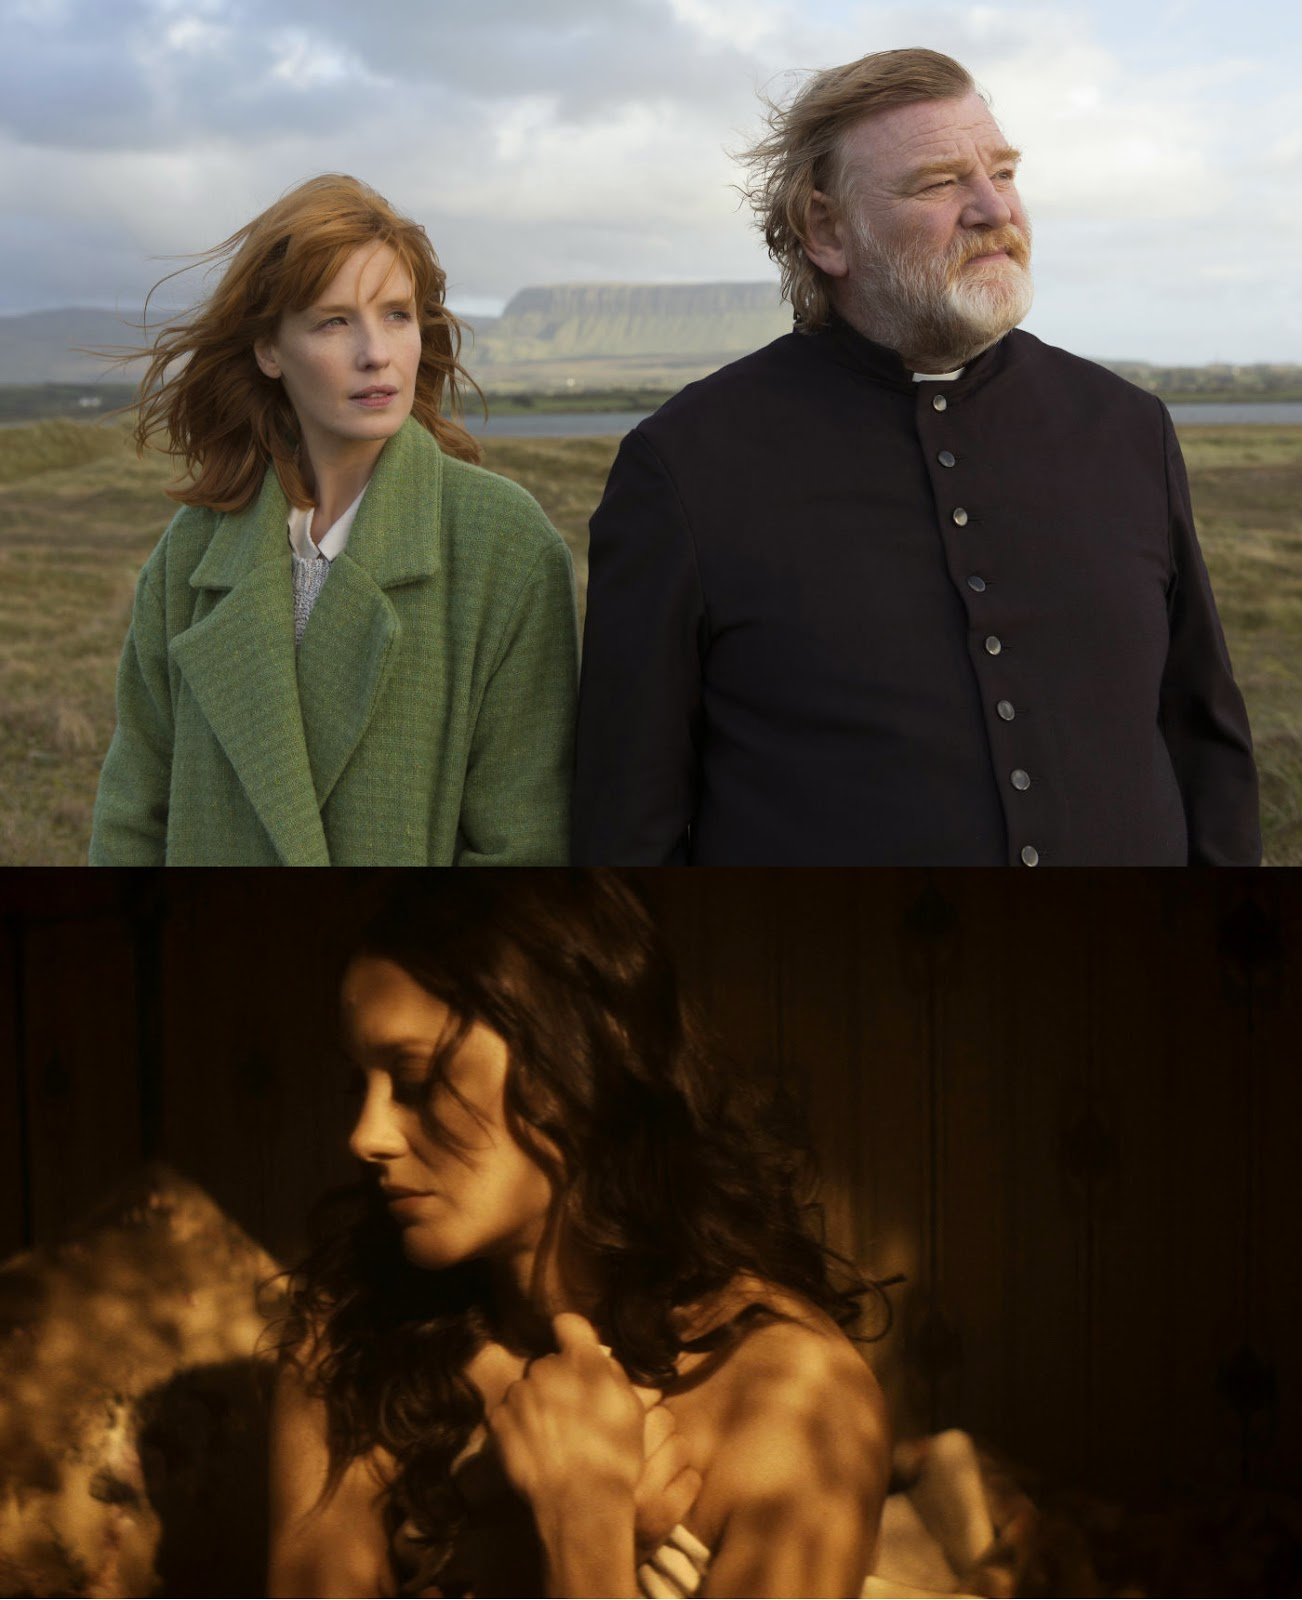 Kelly Rilley and Brendan Gleeson in Calvary and Marion Cotillard in The Immigrant